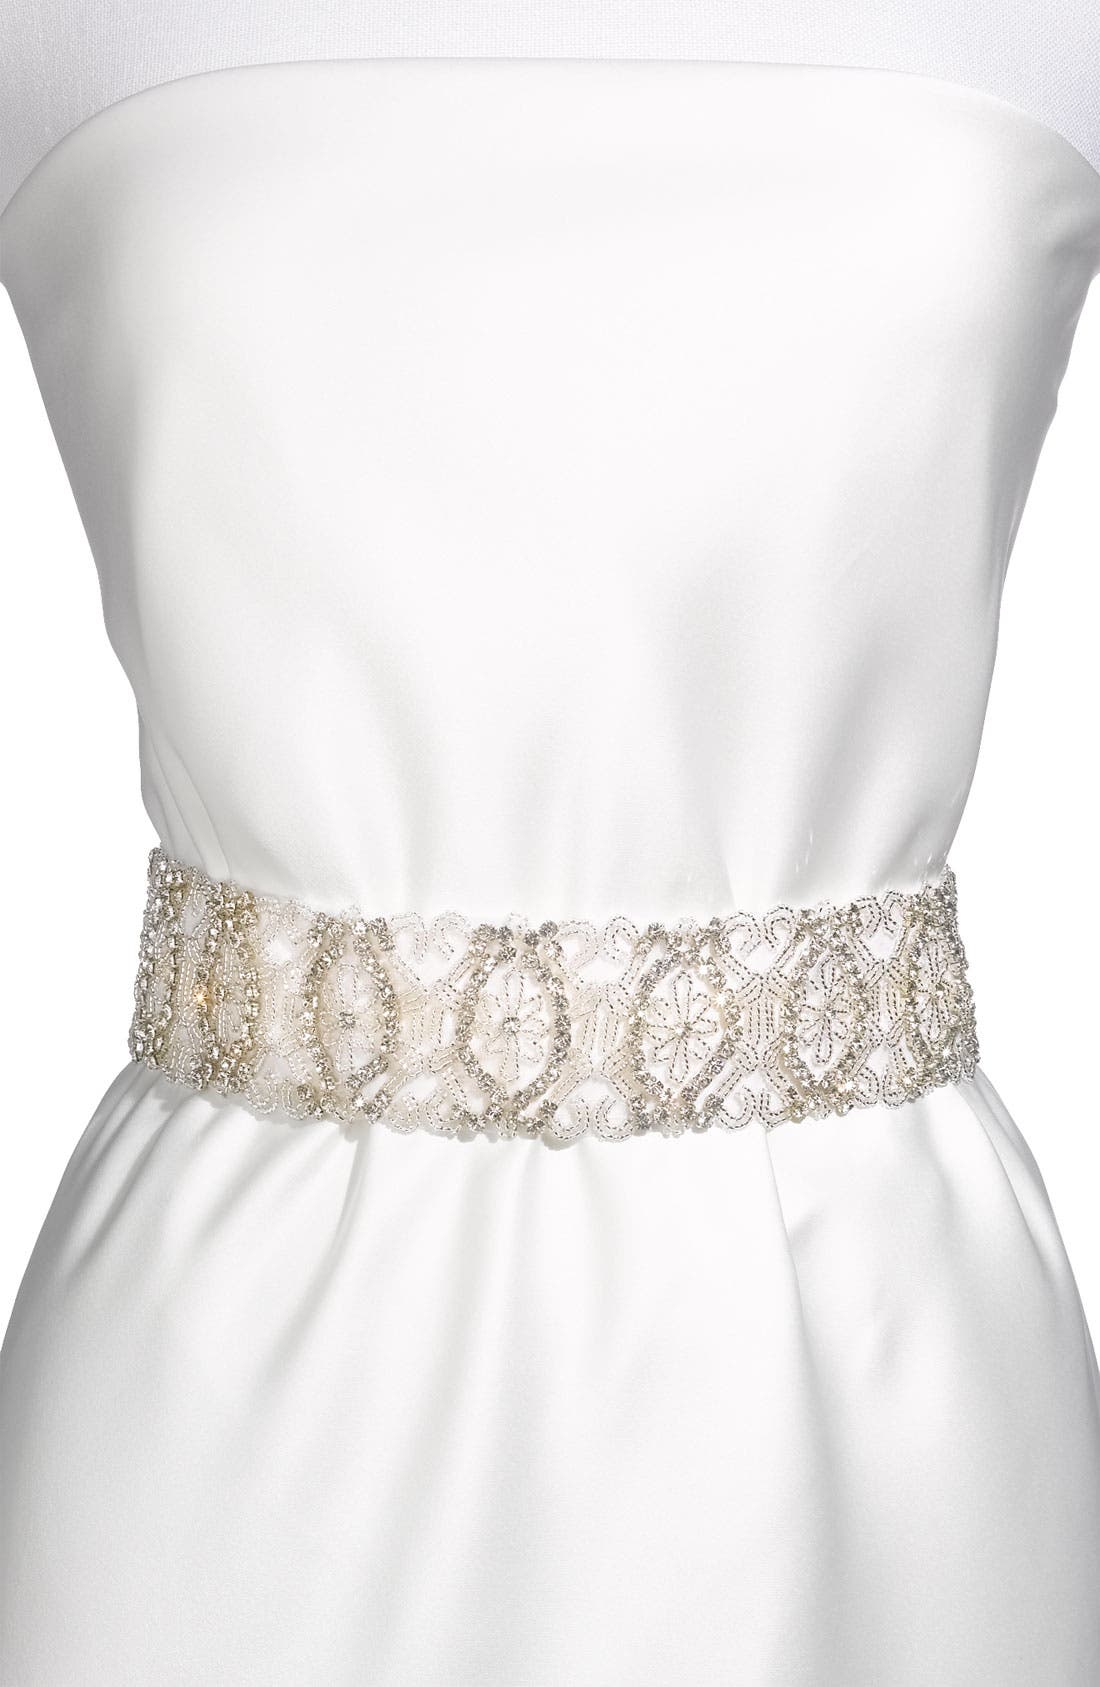 Main Image - Cara Beaded Bridal Belt